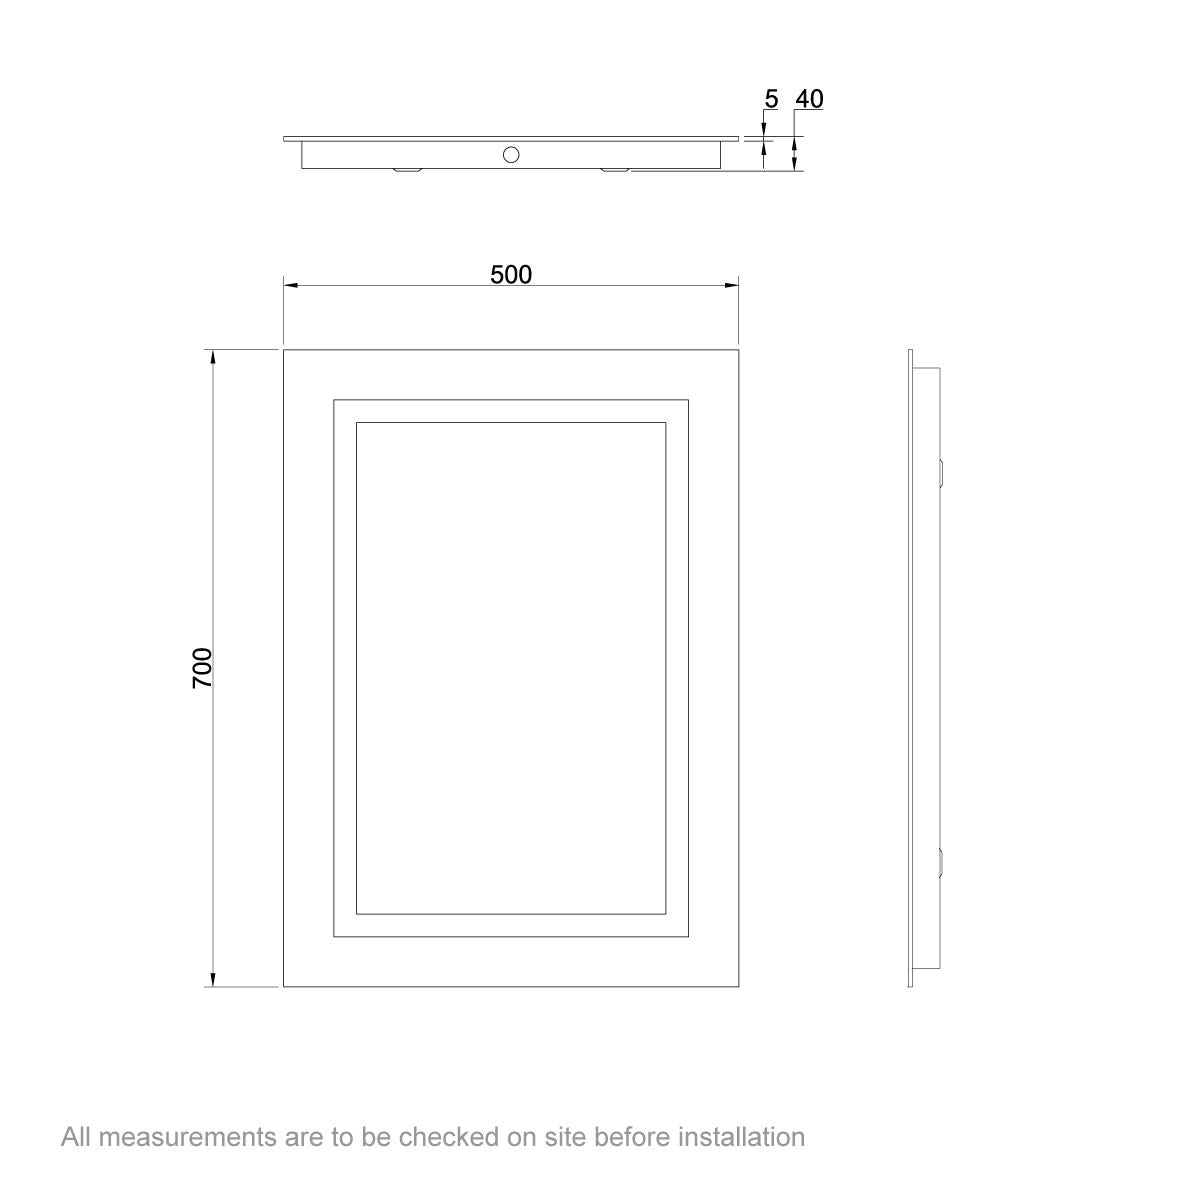 Dimensions for Mode Shine rectangular LED mirror